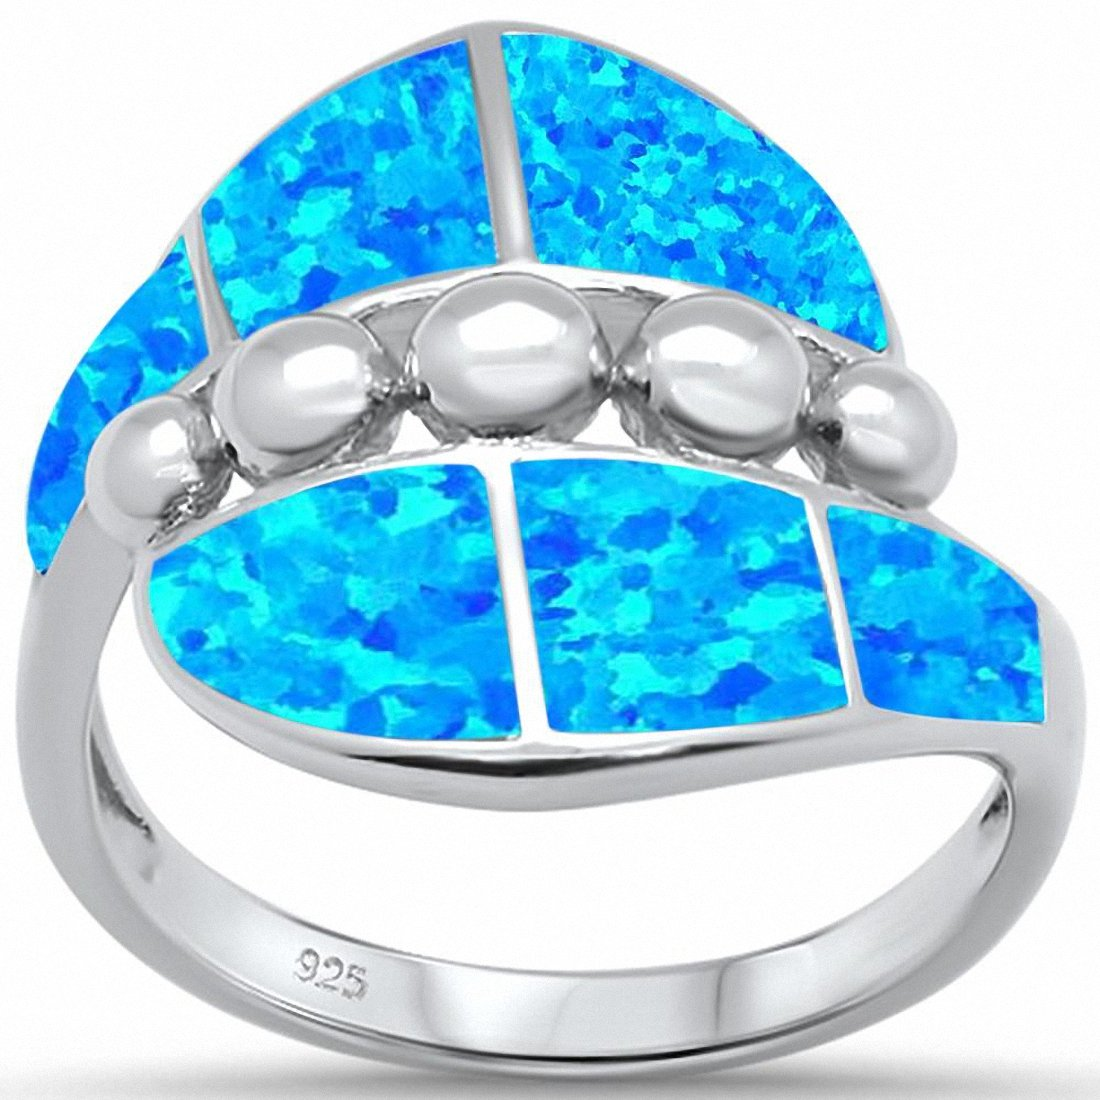 Fashion Ring Cubic Zirconia Simulated Larimar 925 Sterling Silver Choose Color